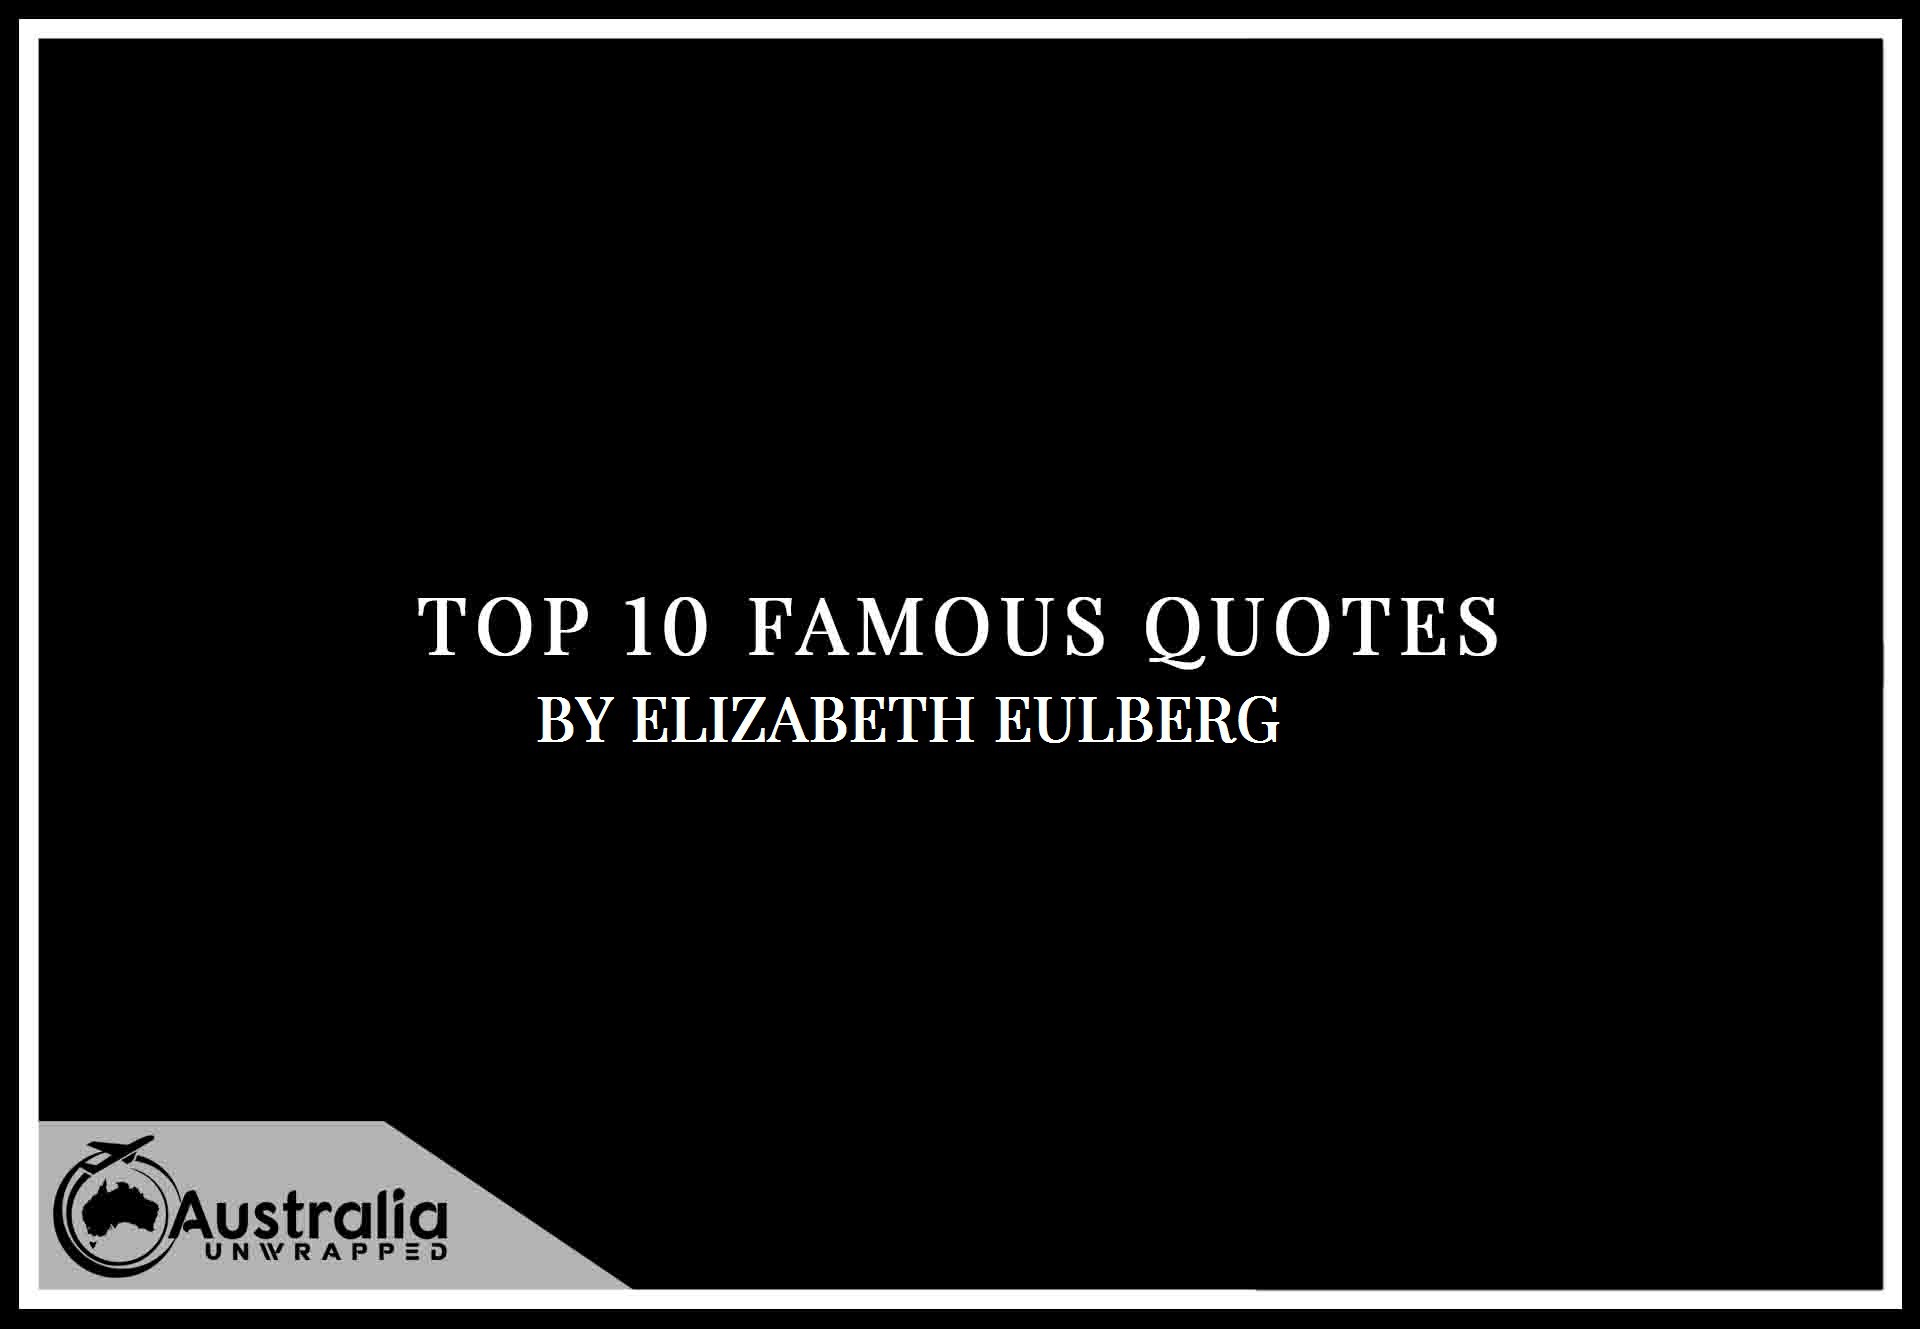 Elizabeth Eulberg's Top 10 Popular and Famous Quotes